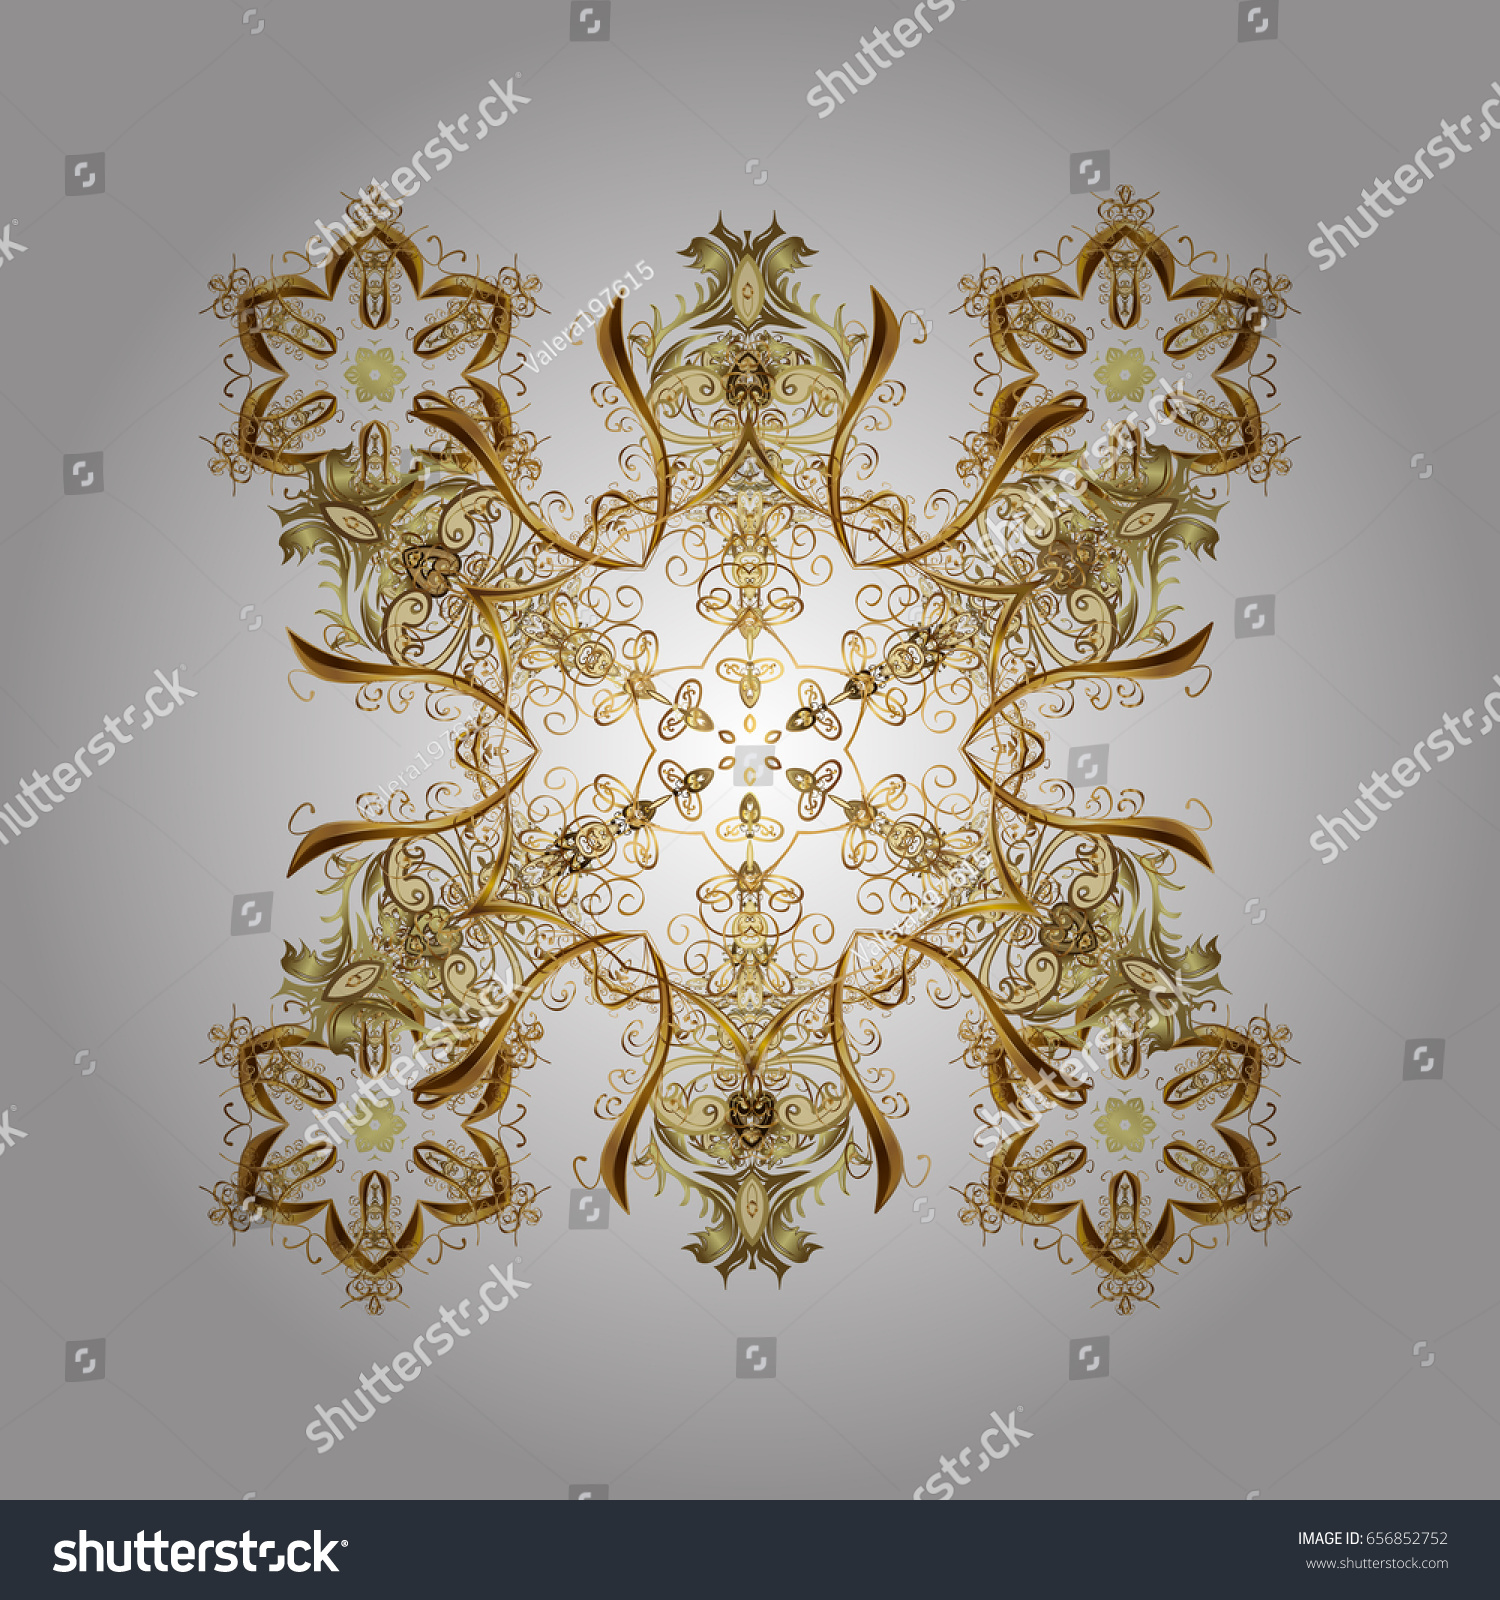 Ornamental artistic vector illustration in white colors for Merry ...